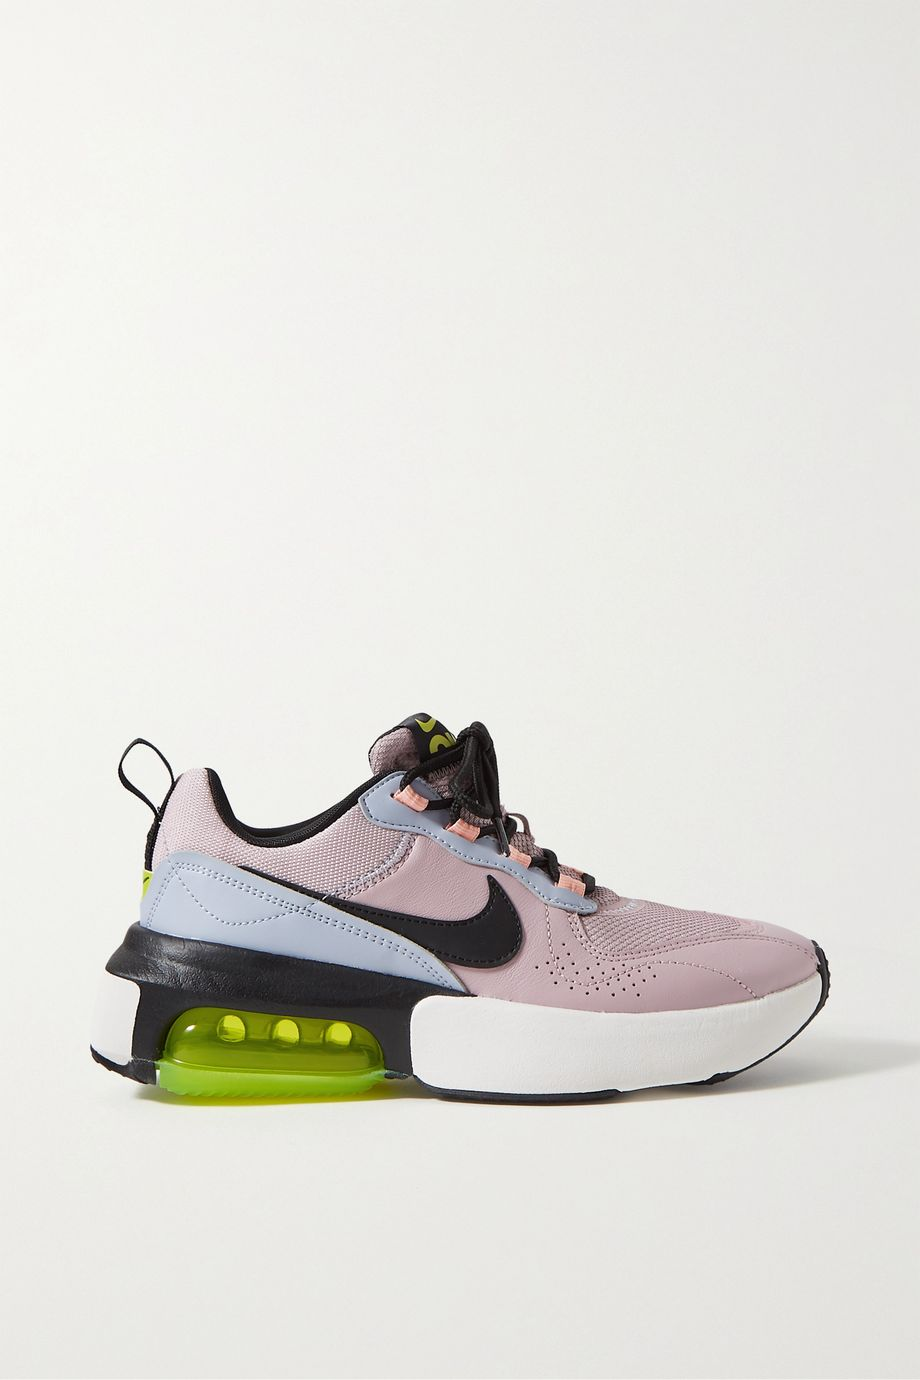 Nike Air Max Verona leather and mesh sneakers